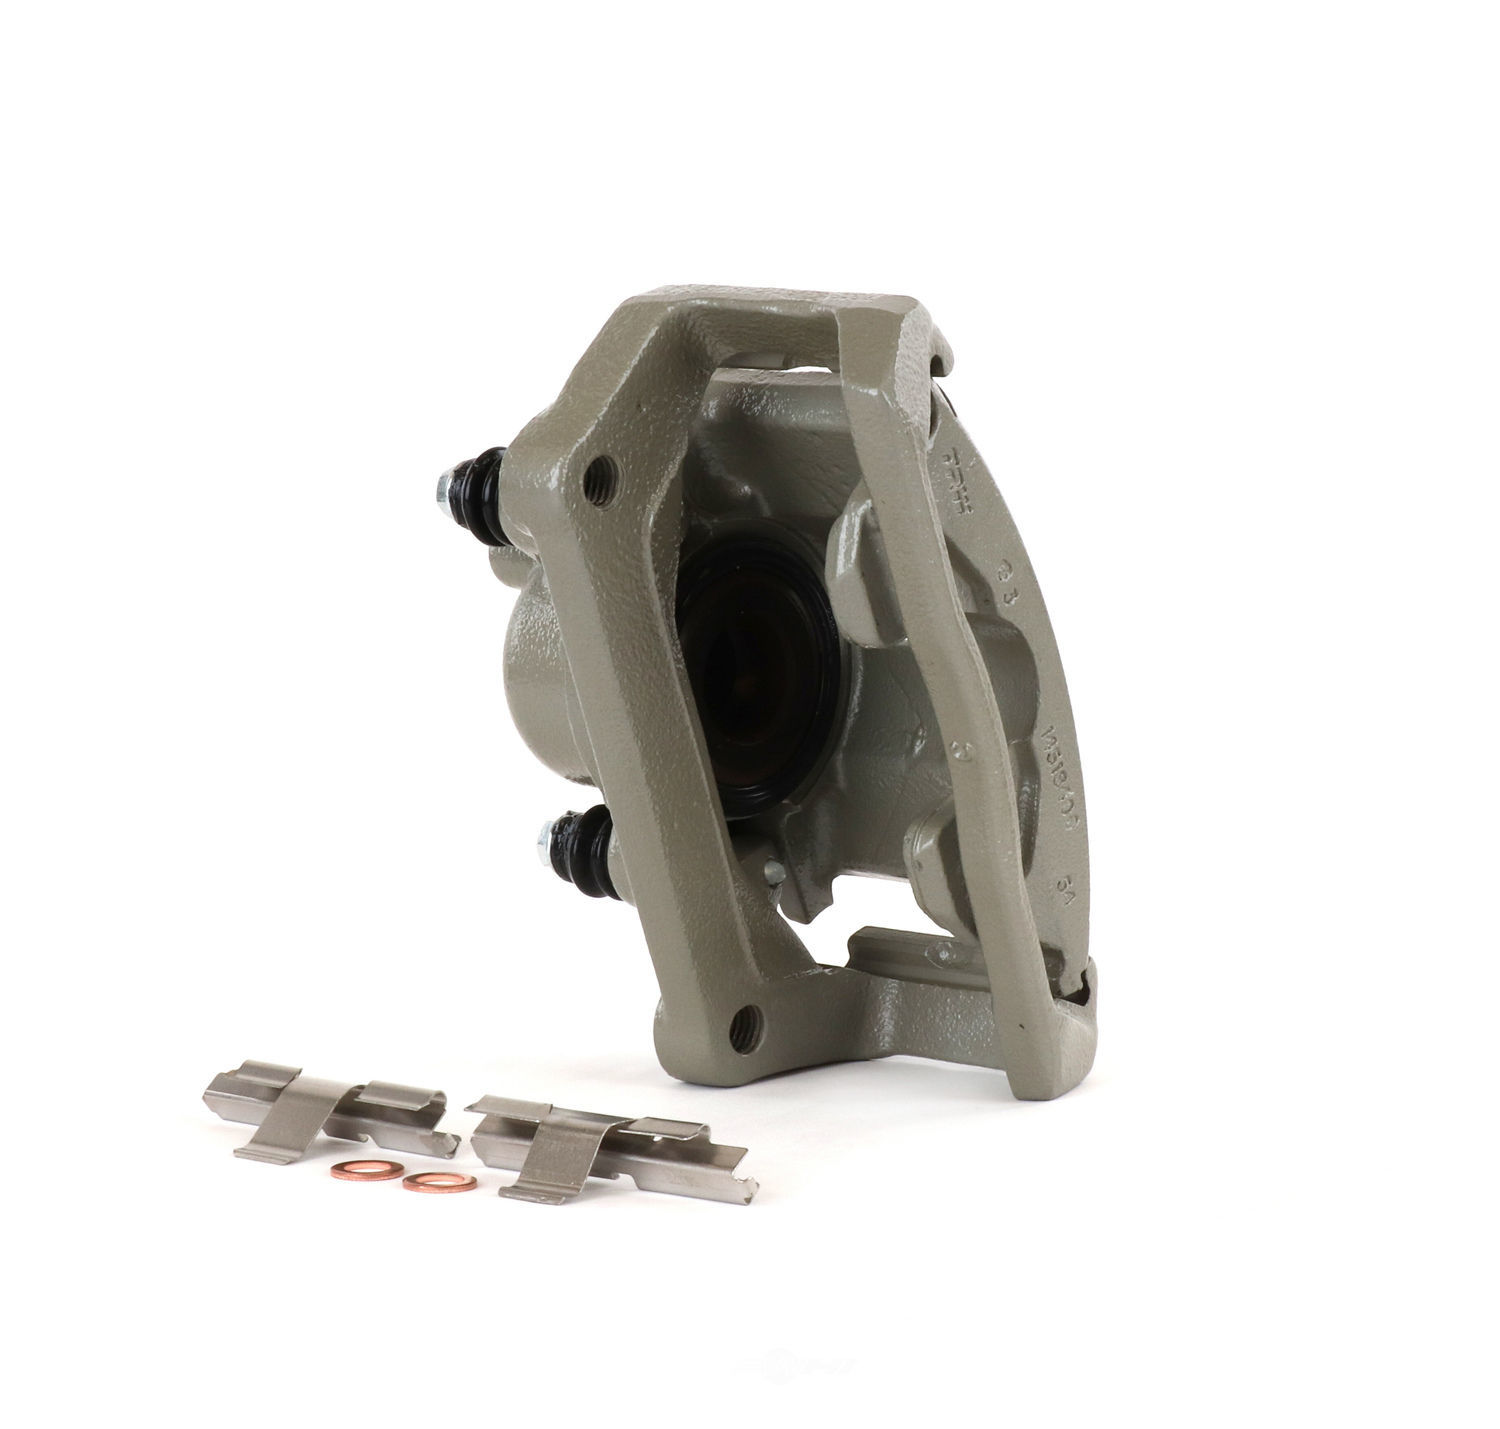 CARDONE/A-1 CARDONE - Reman Friction Choice Caliper w/Bracket (Rear Right) - A1C 18-B4836